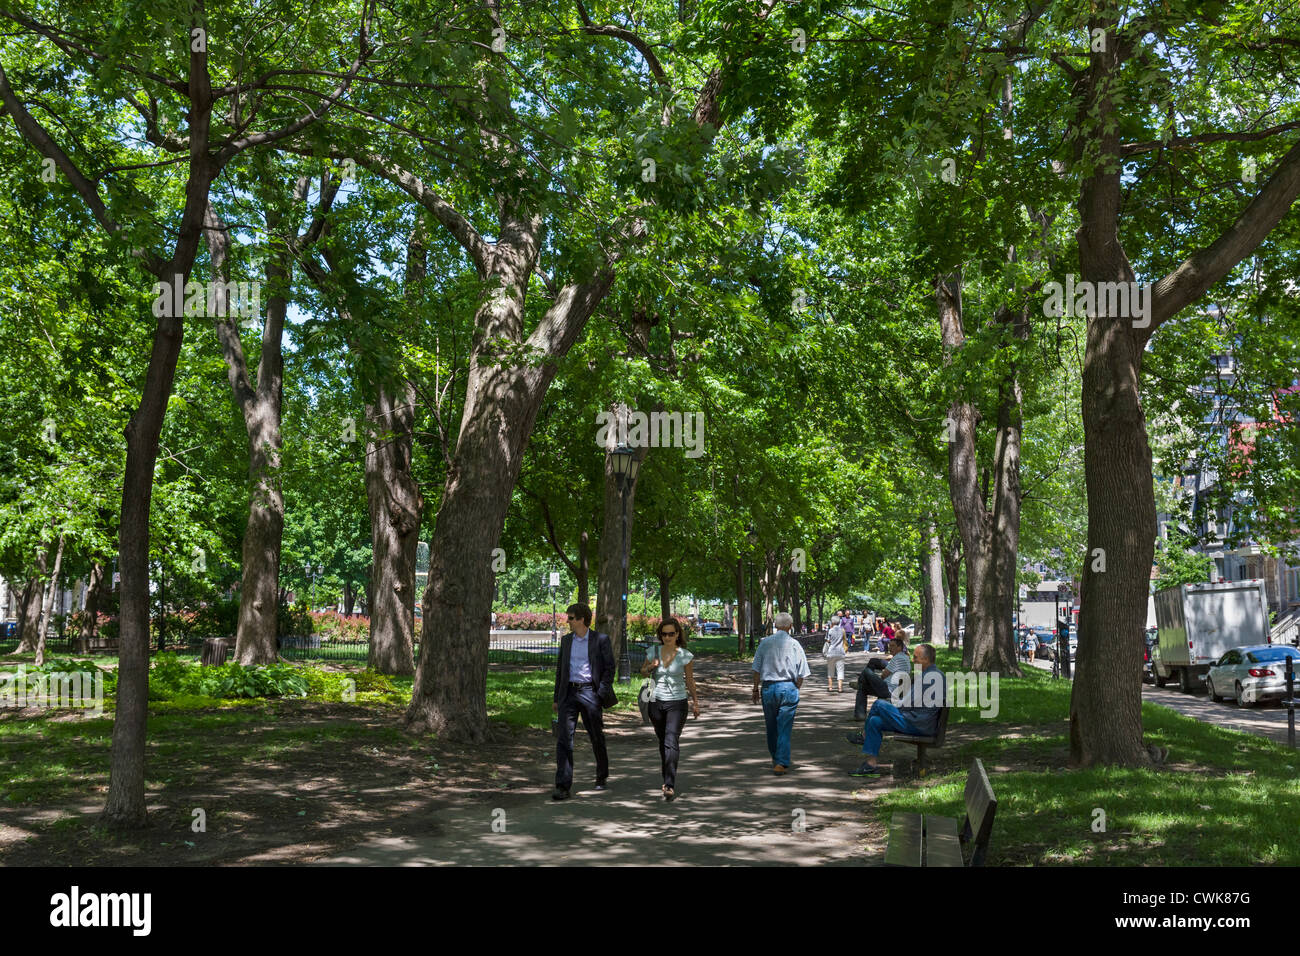 Square Saint-Louis in the Plateau Mont-Royal district, Montreal, Quebec, Canada - Stock Image